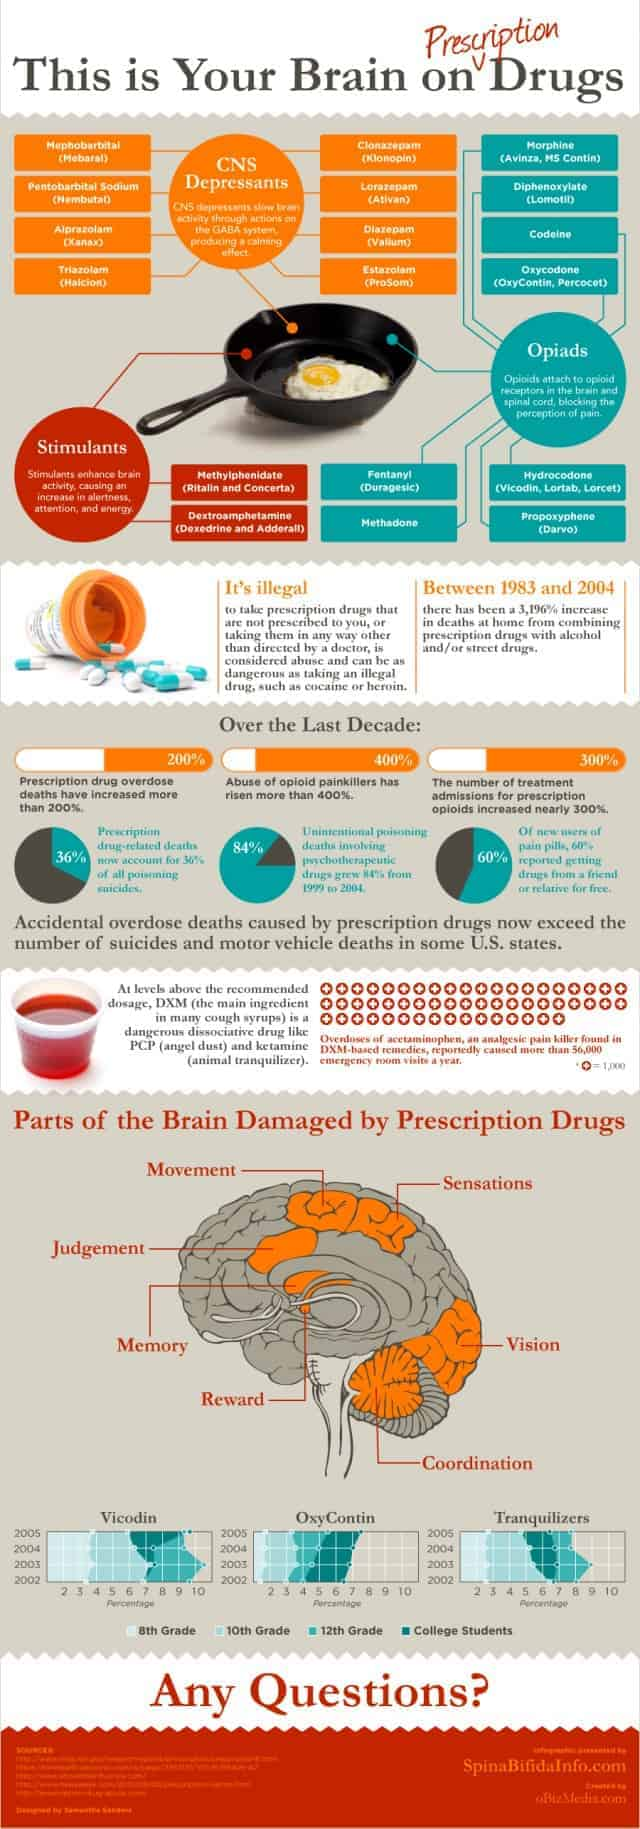 prescriptiondrugs_infographic-e1332634609484